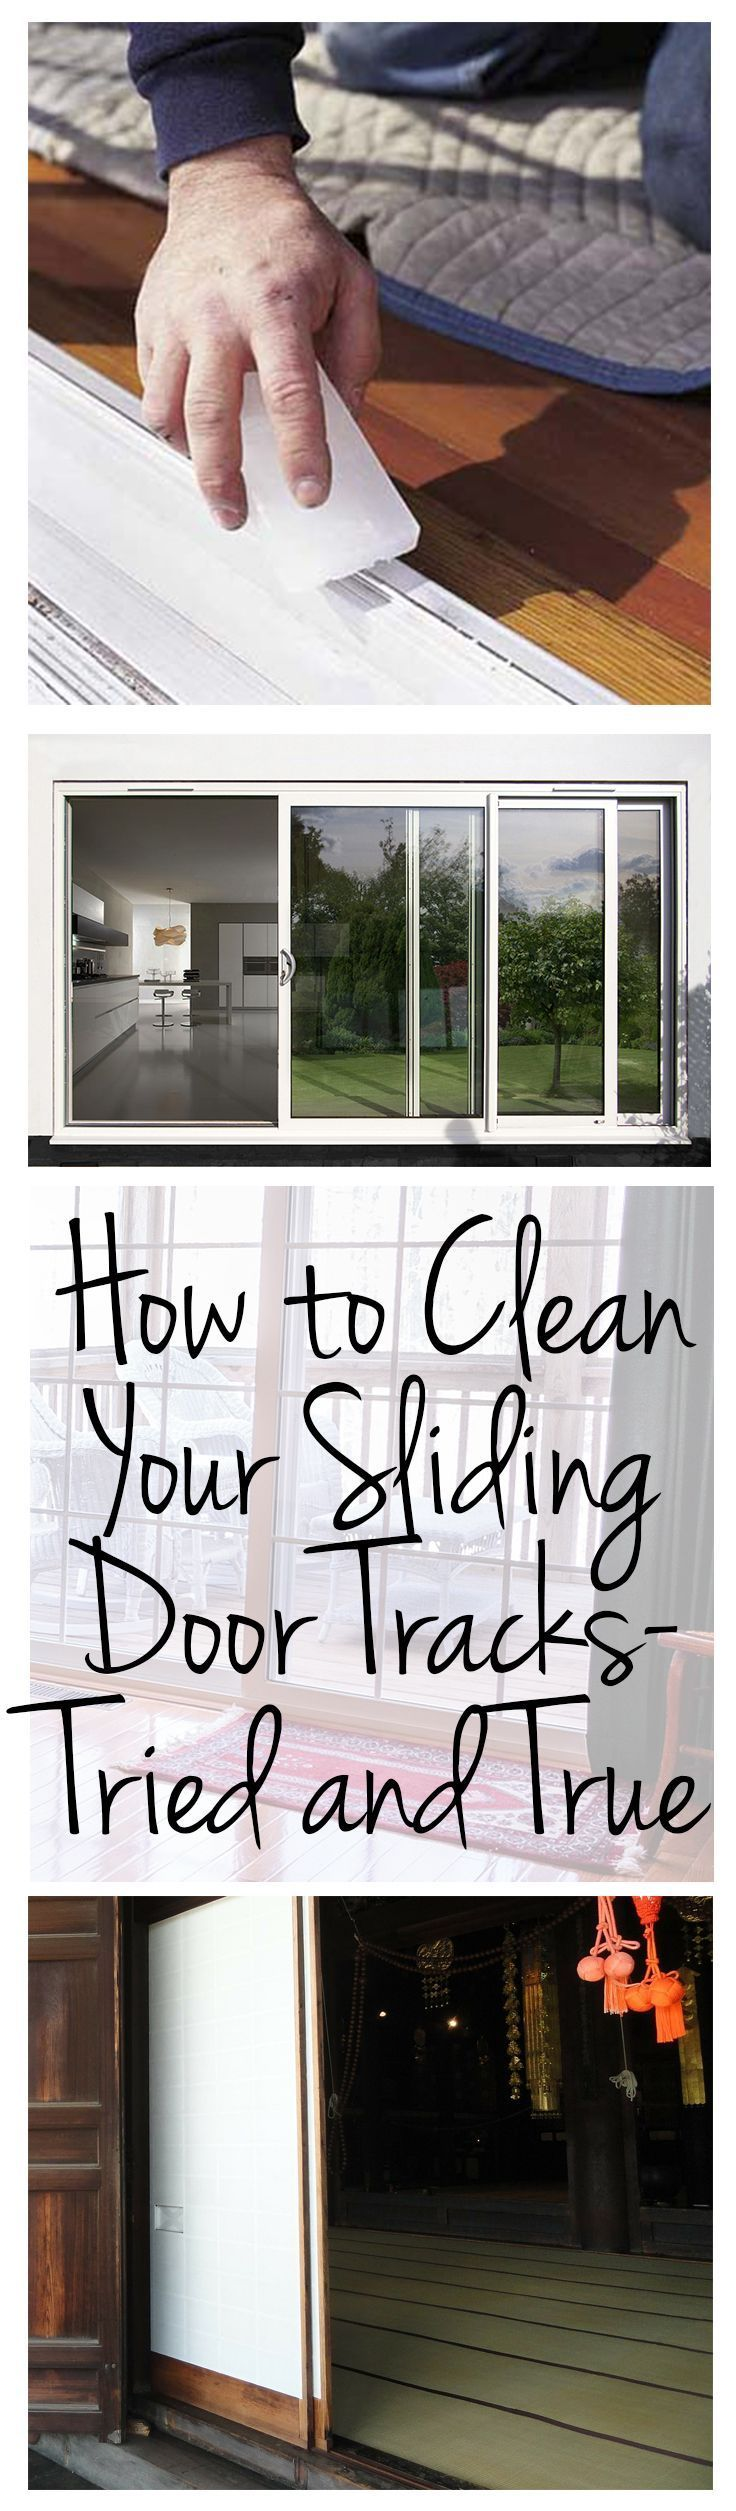 1268 best clean images on pinterest how to clean your sliding door tracks tried and true